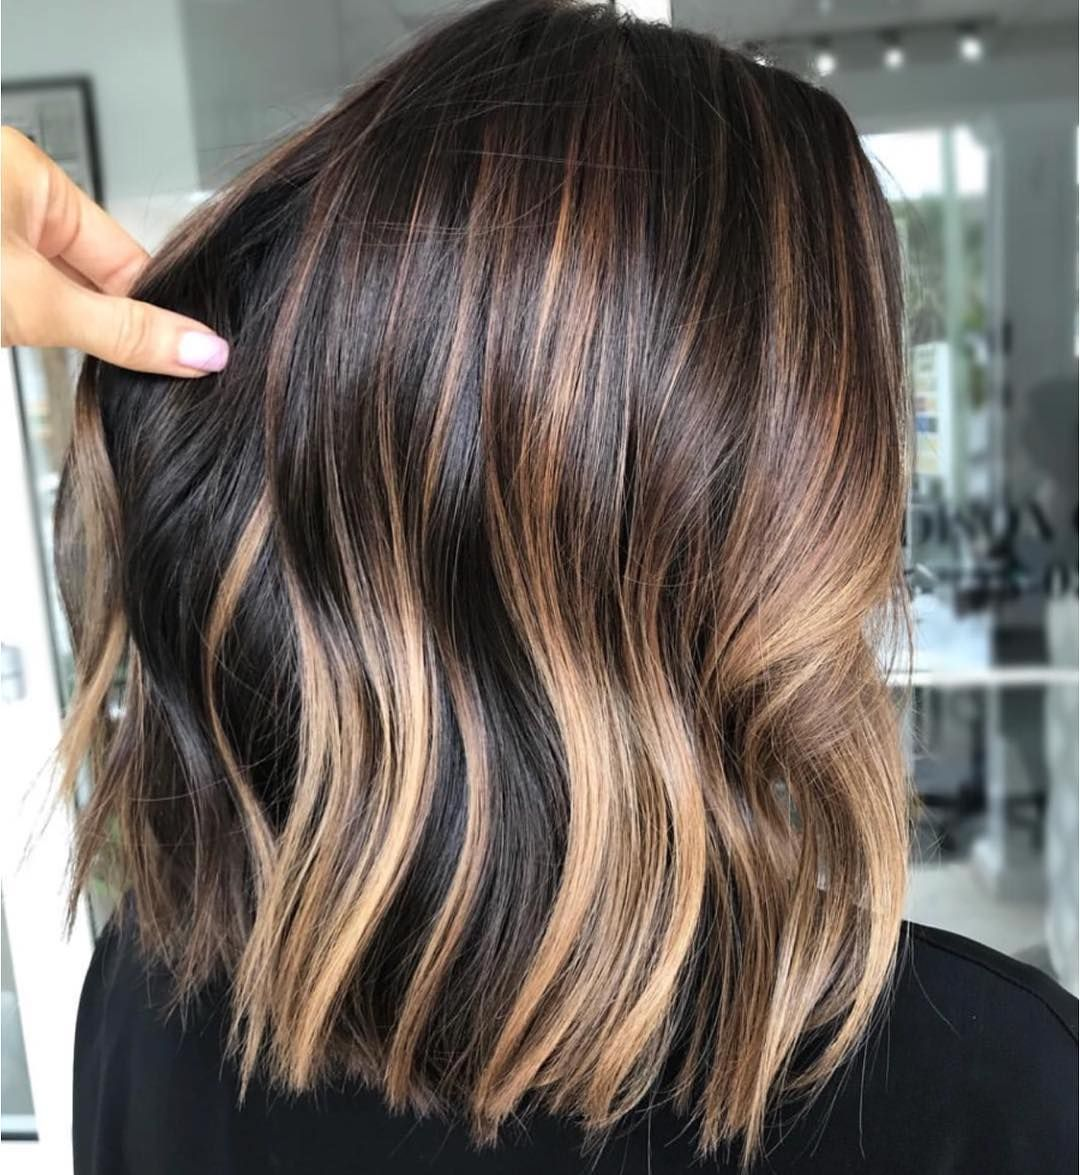 Hairstyles For Women Fall 2020 Hairstyles Pictures Hair Styles Brunette Balayage Hair Short Long Hair Styles